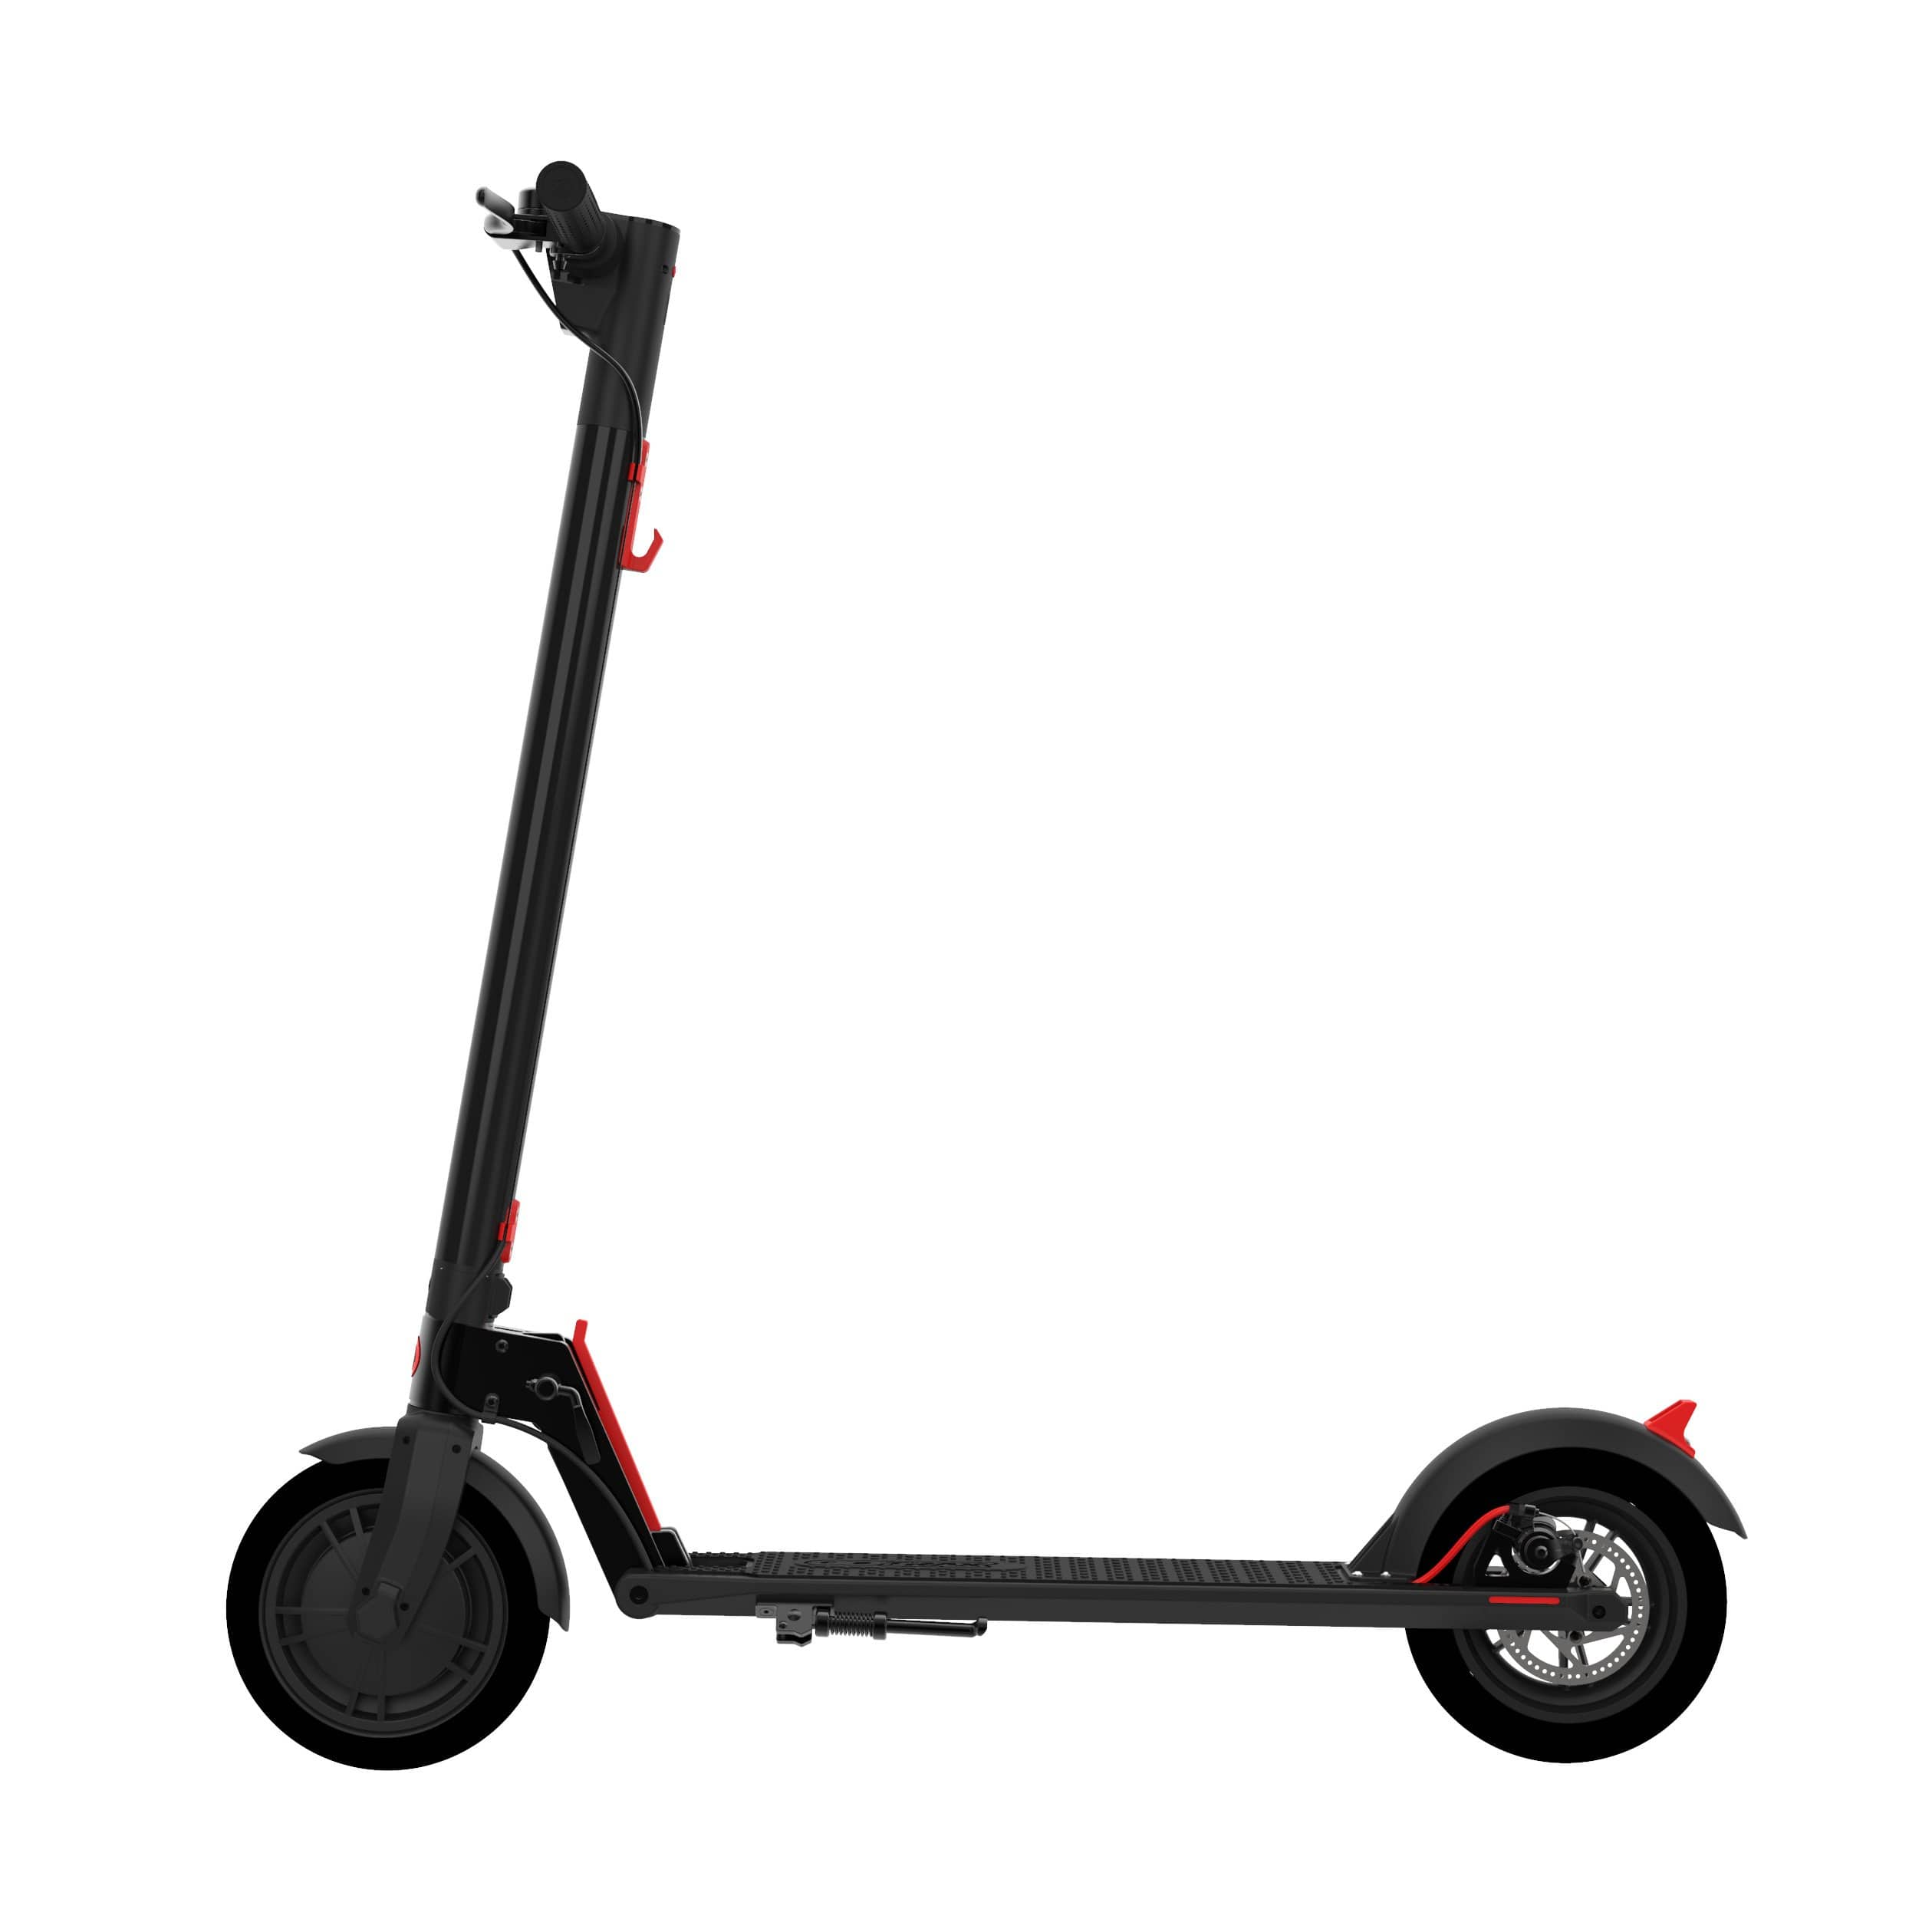 Gotrax GXL COMMUTER SCOOTER - VERSION 2 $270